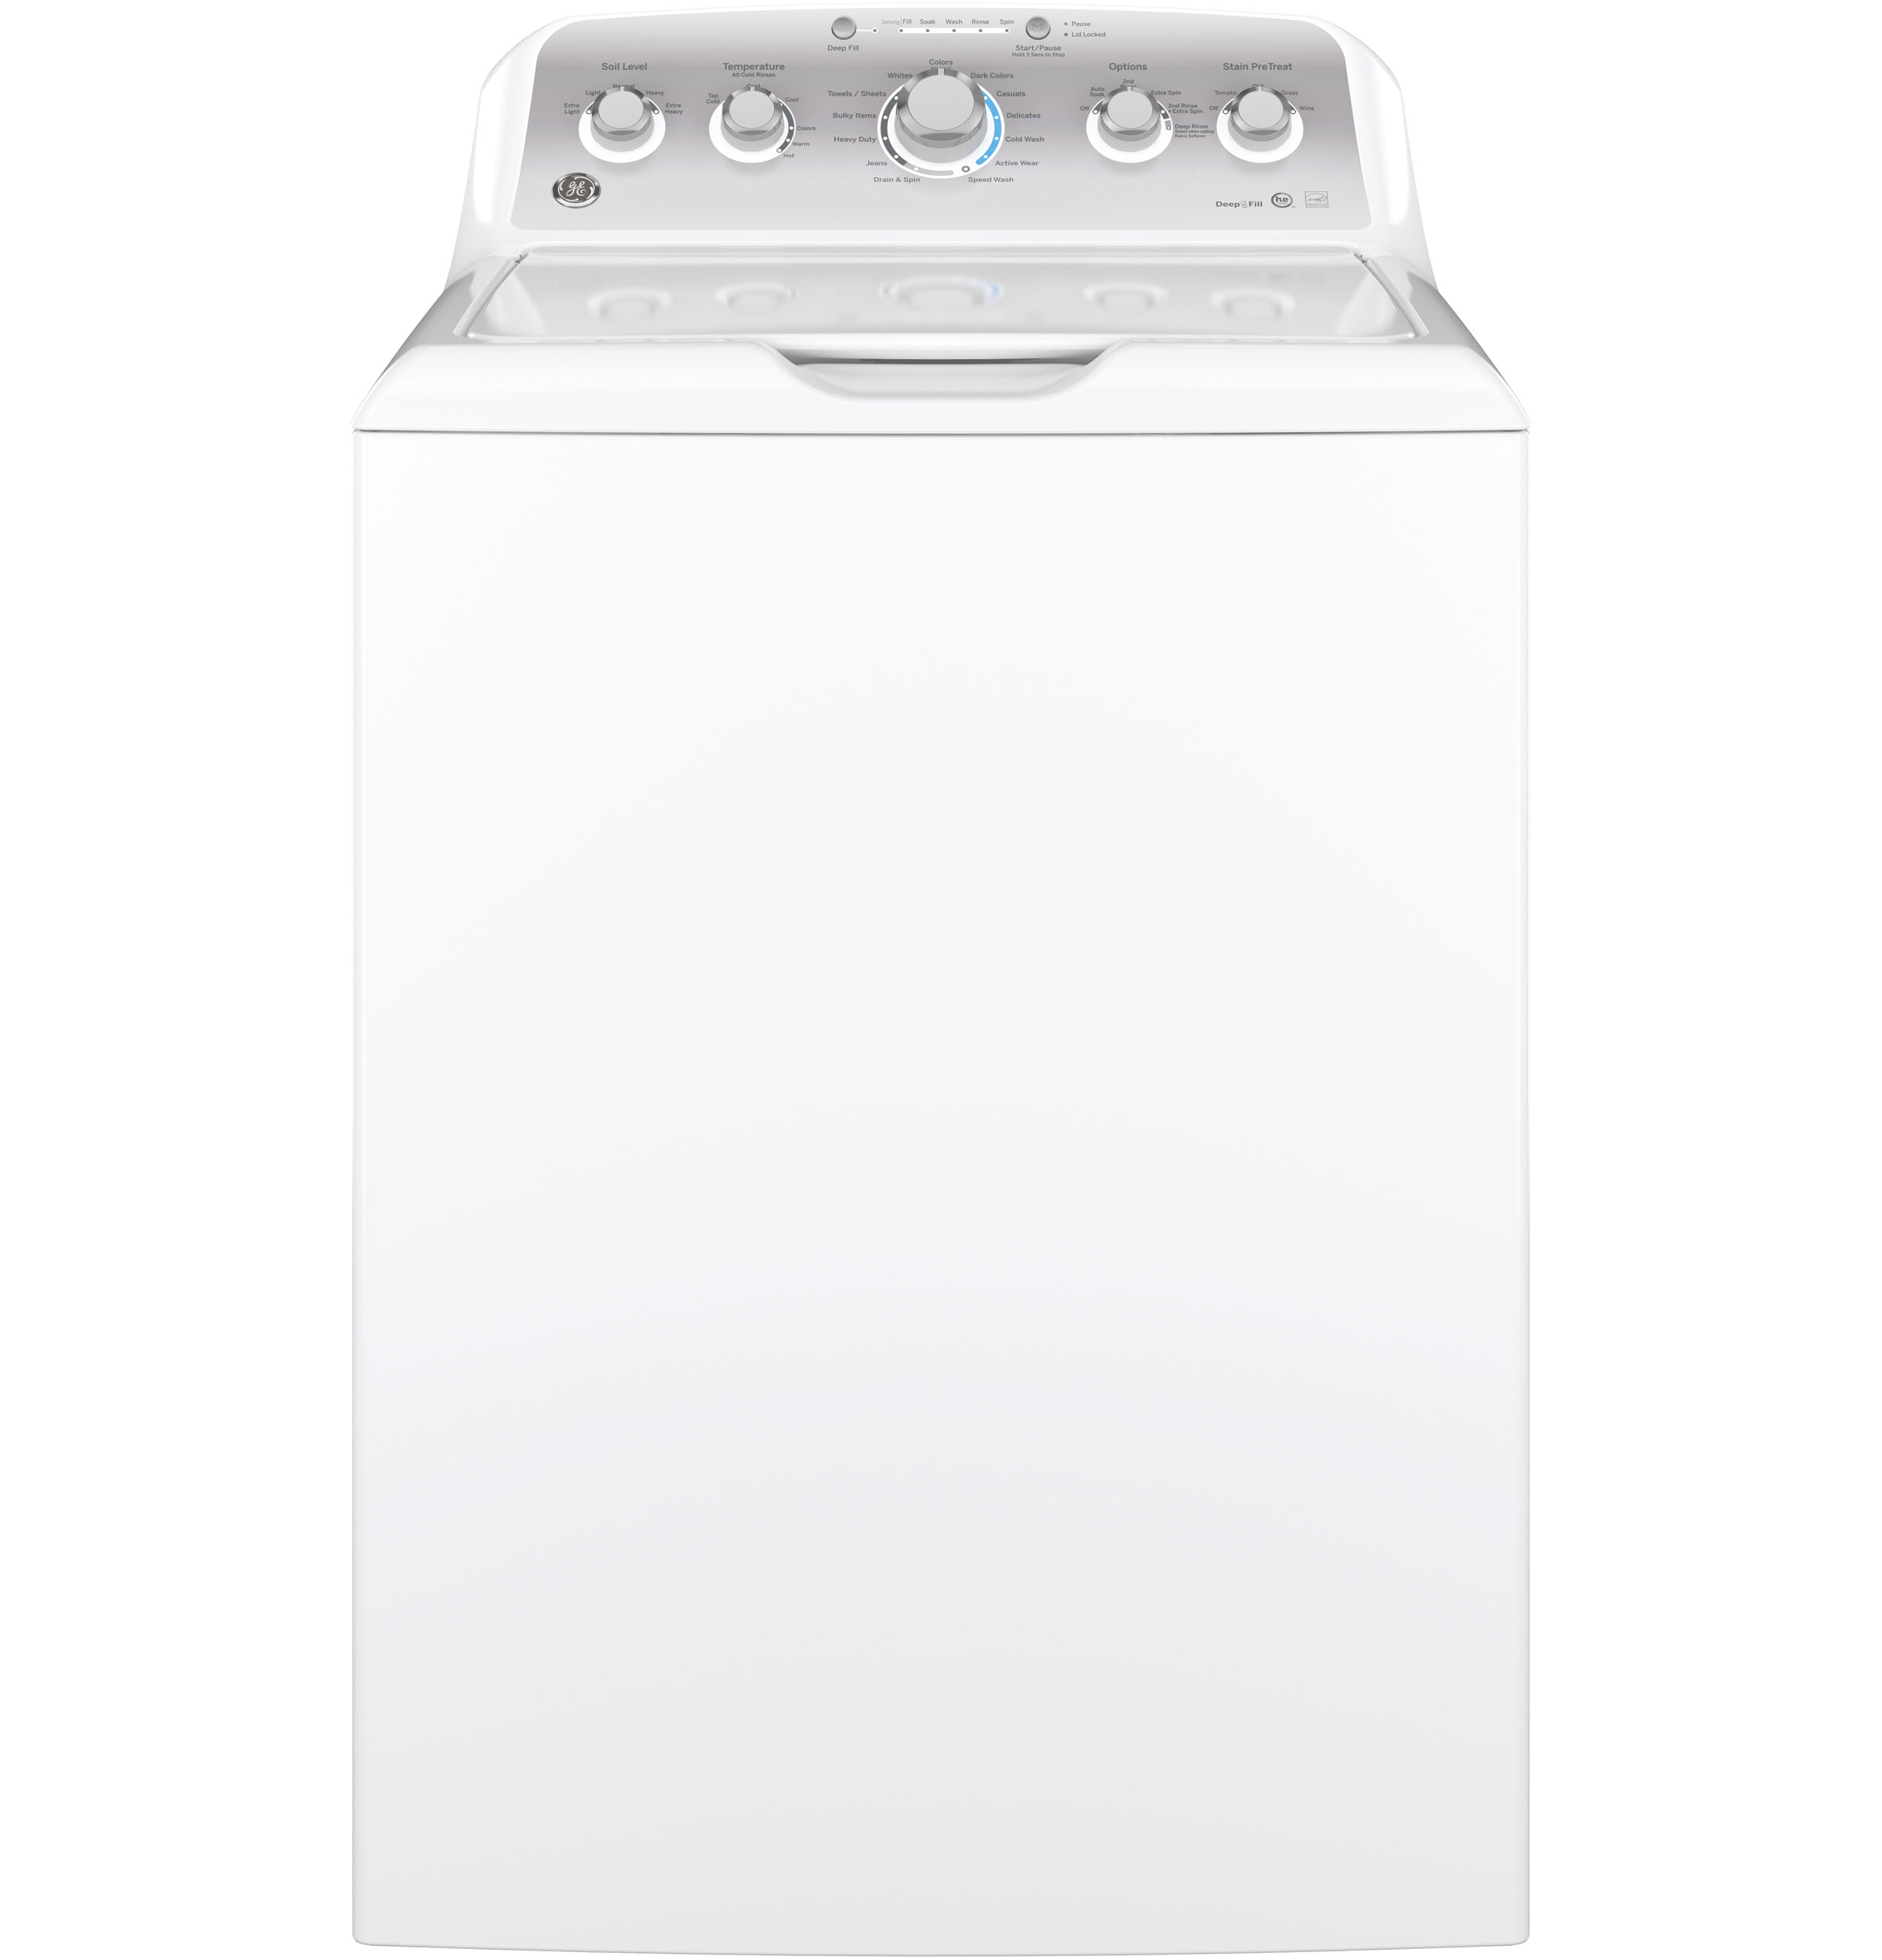 Ge Agitator Washer Residential Products Online